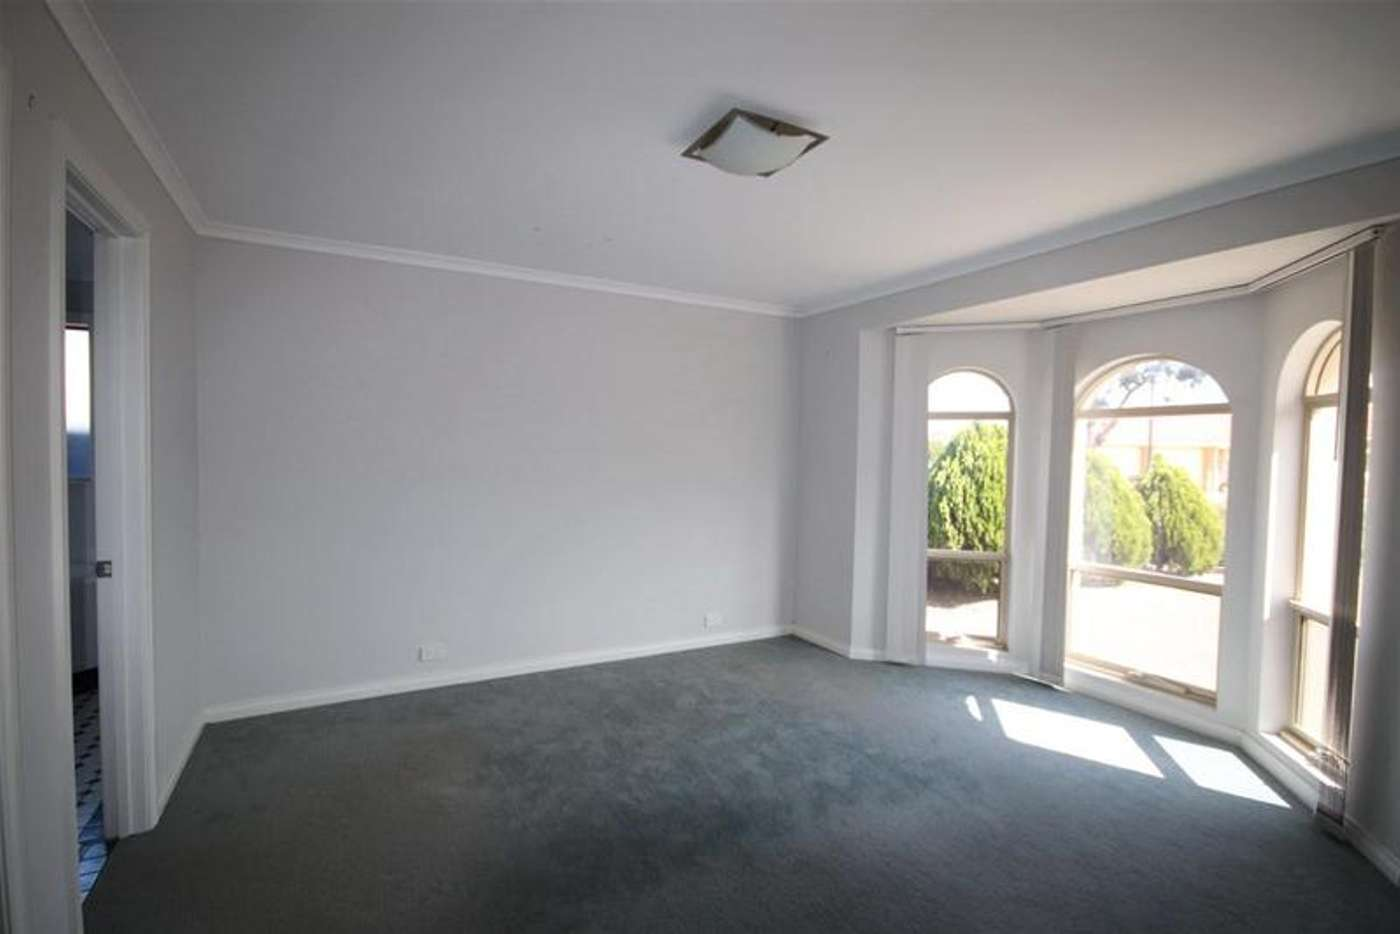 Sixth view of Homely house listing, 14 Bunyip Way, Mannum SA 5238